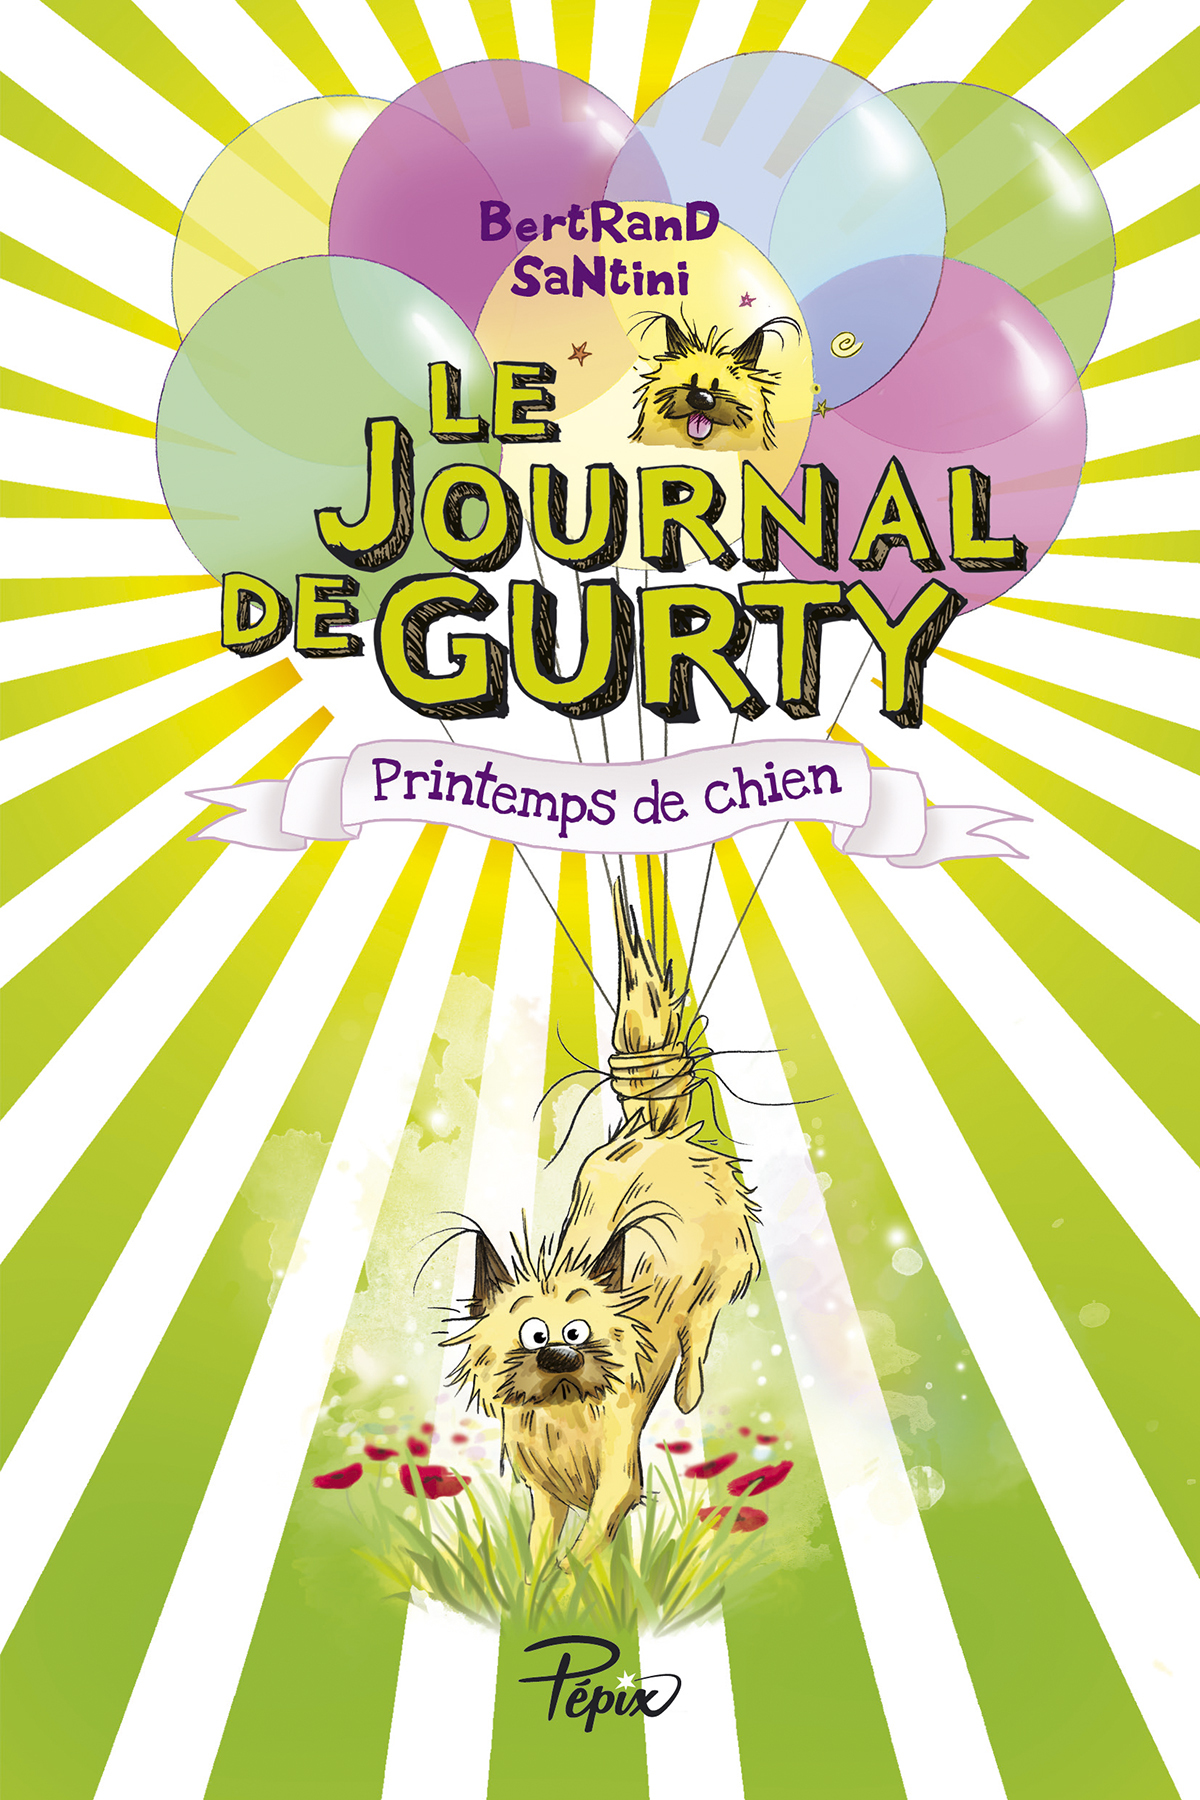 LE JOURNAL DE GURTY - PRINTEMPS DE CHIEN